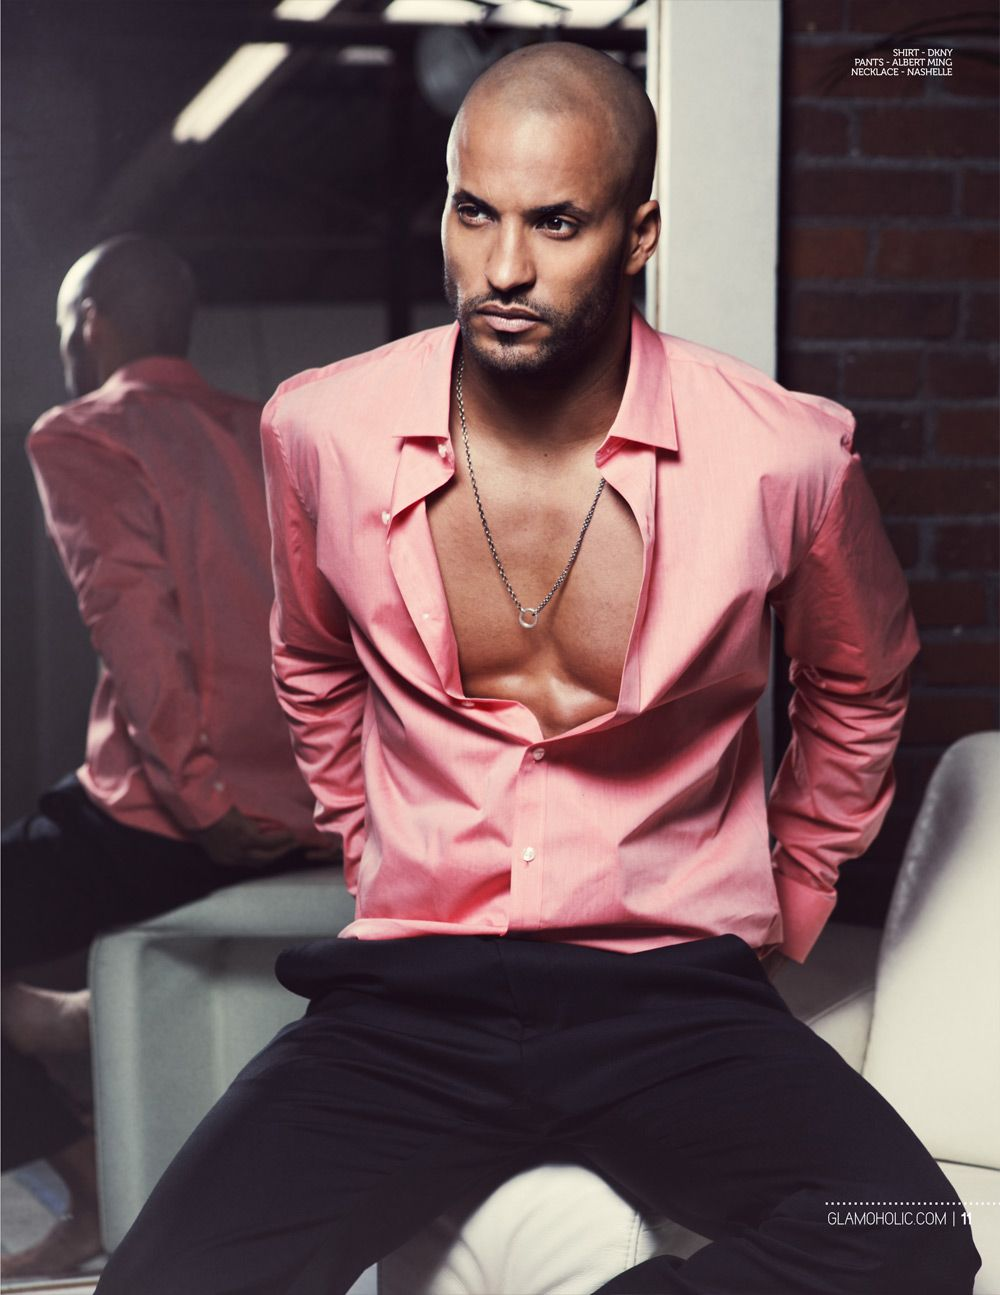 ricky whittle photoshoot